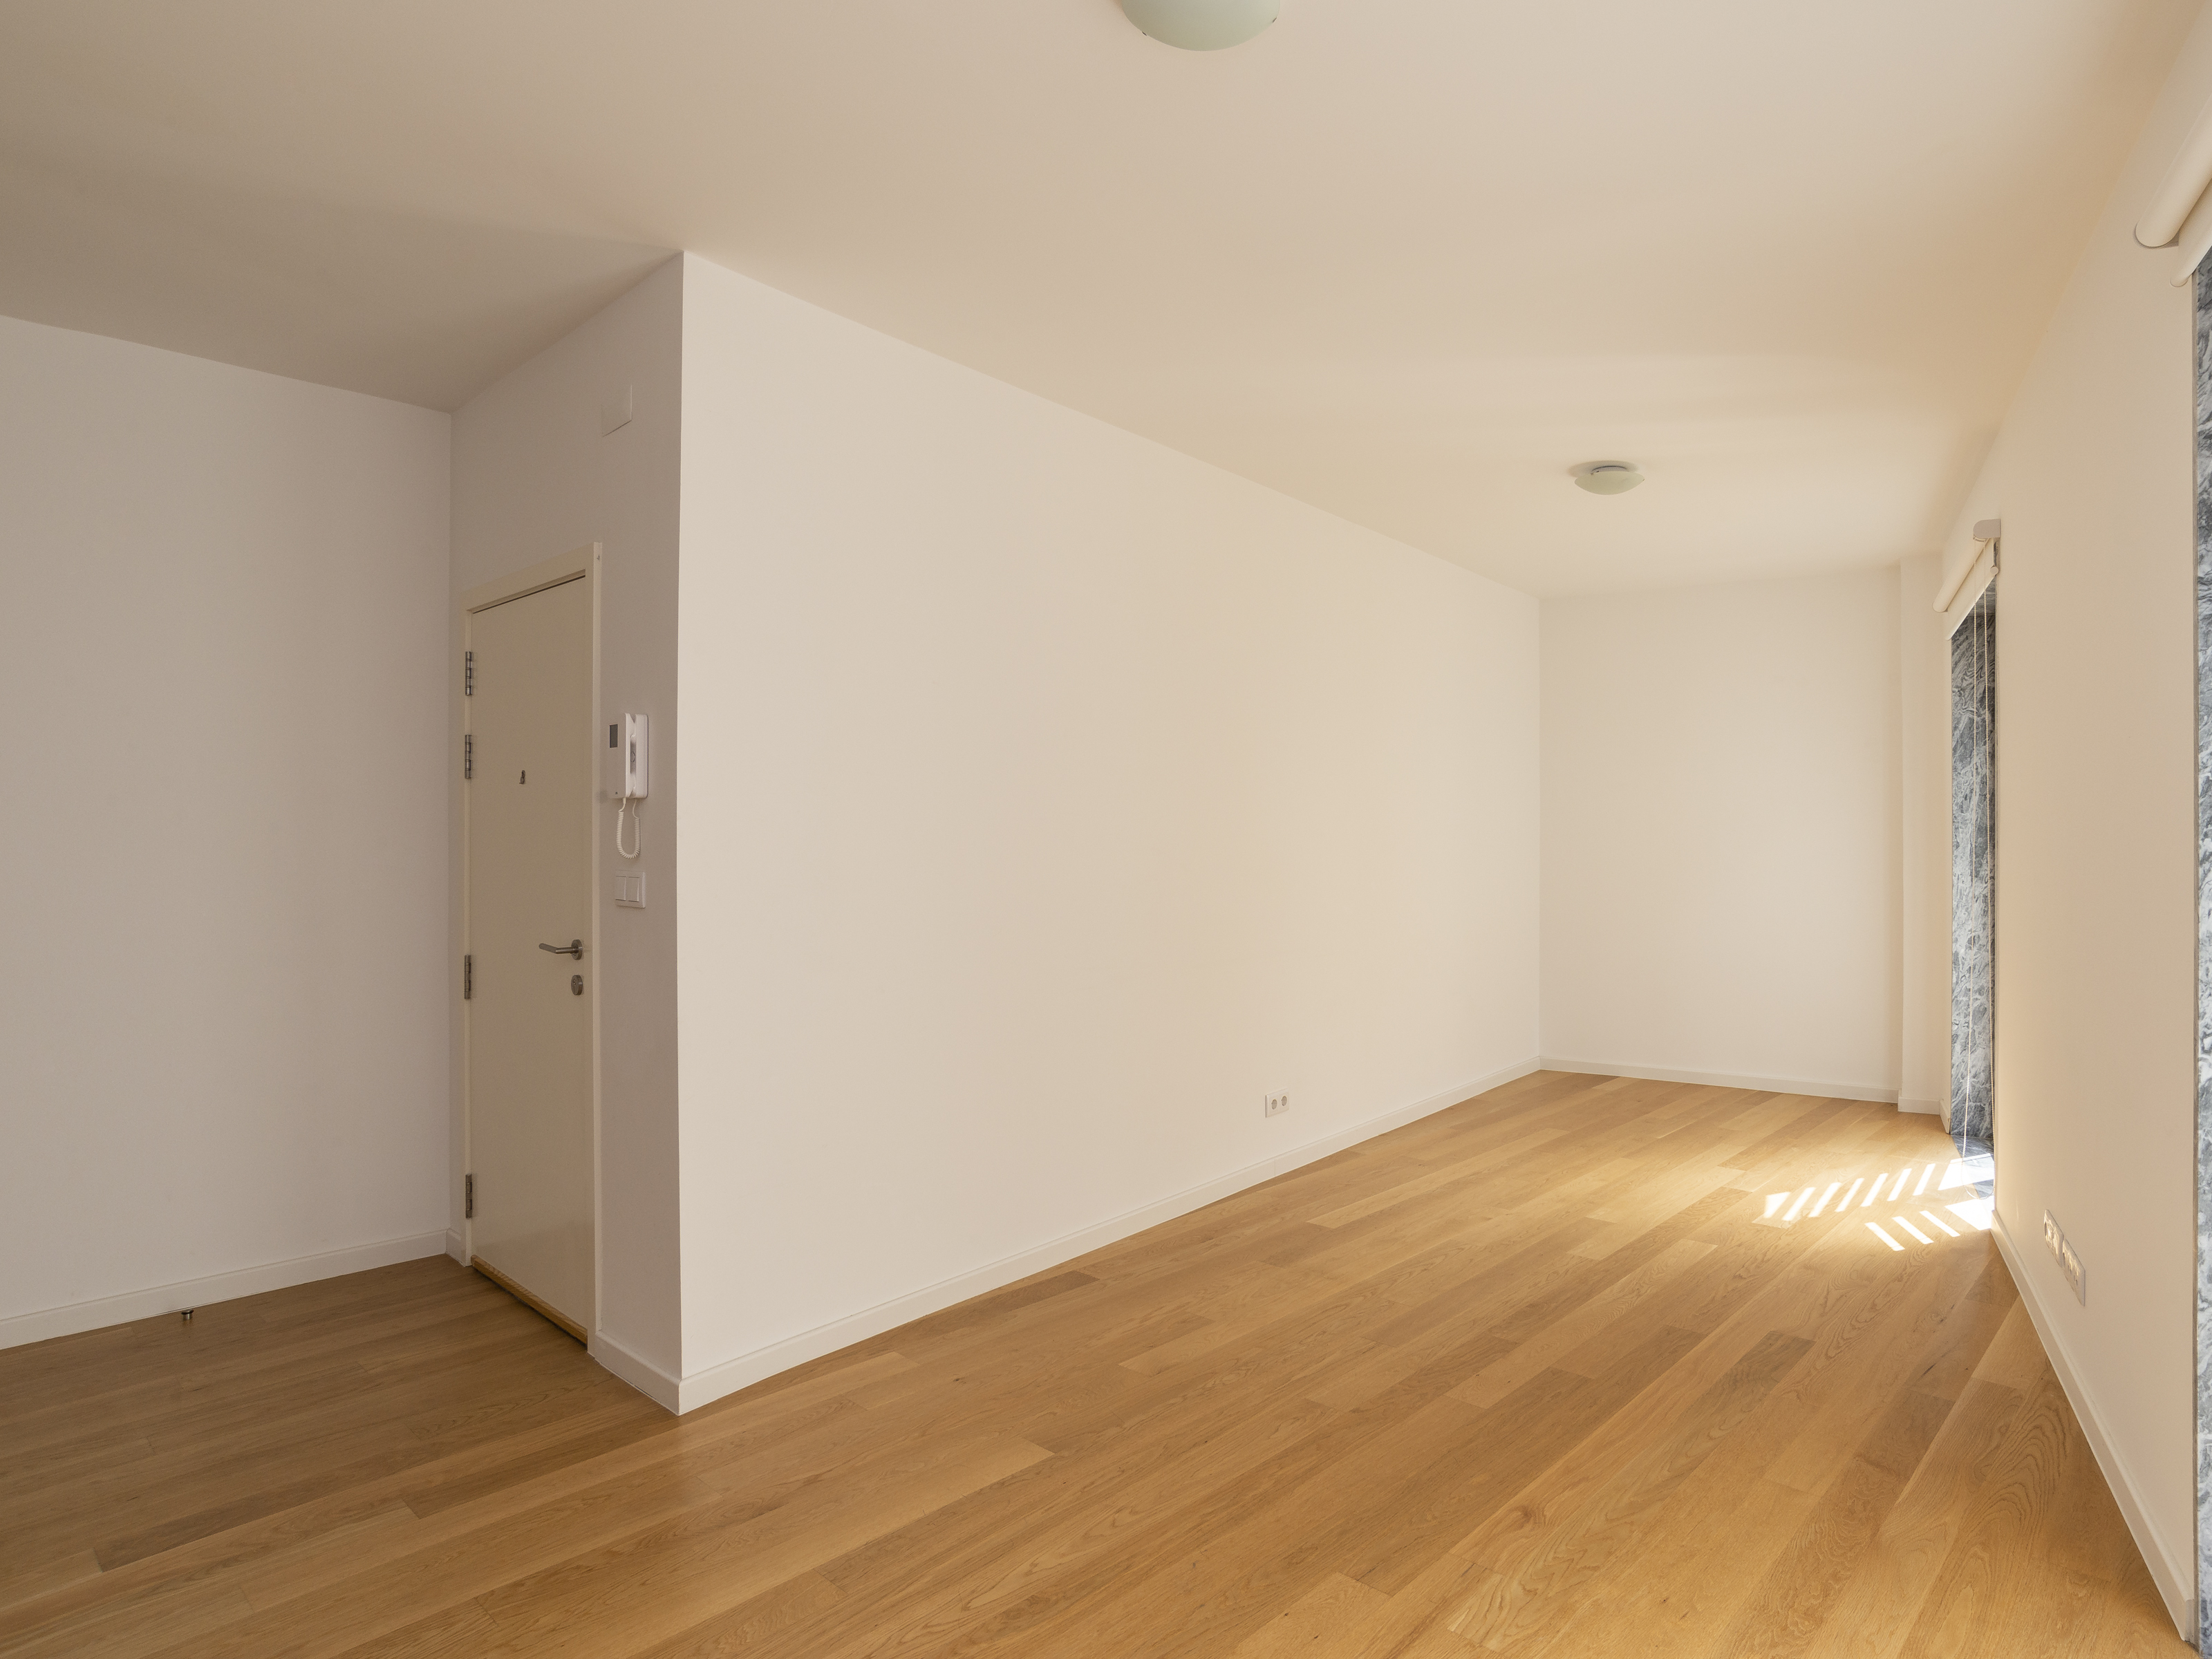 Rental Apartment T2 with Parking Place, Equipped Kitchen